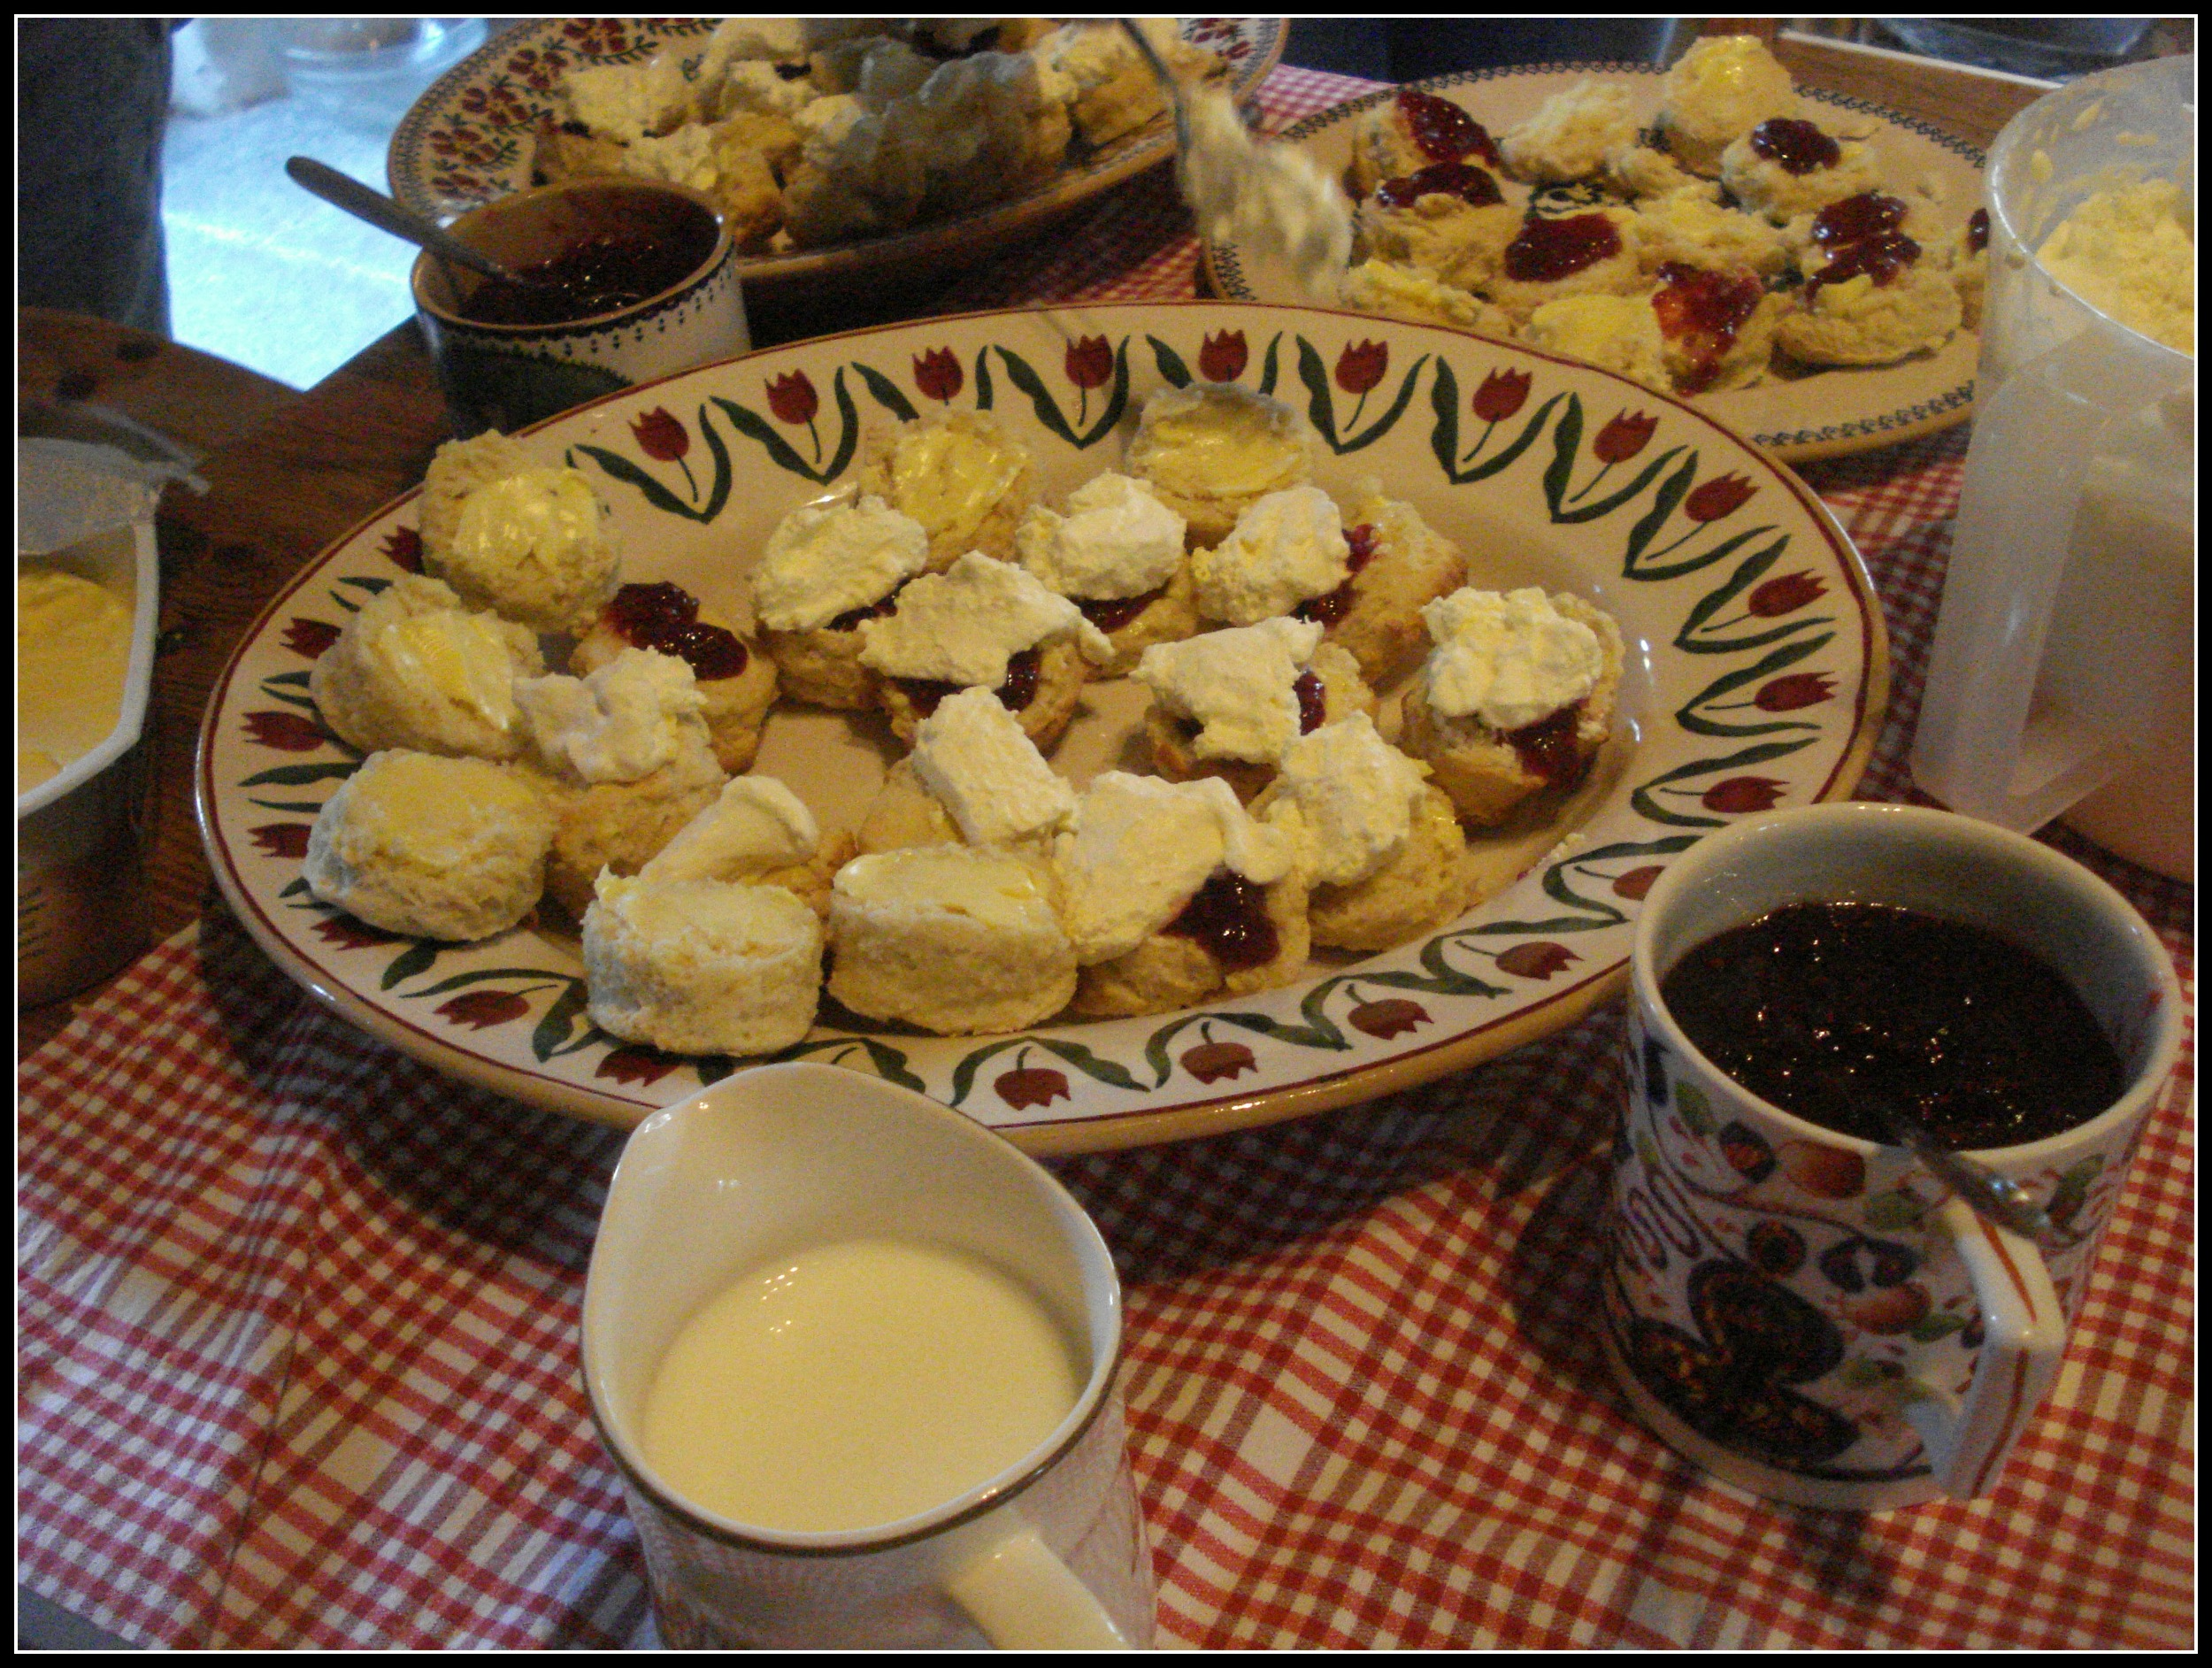 Scones, lovingly made by Claire.